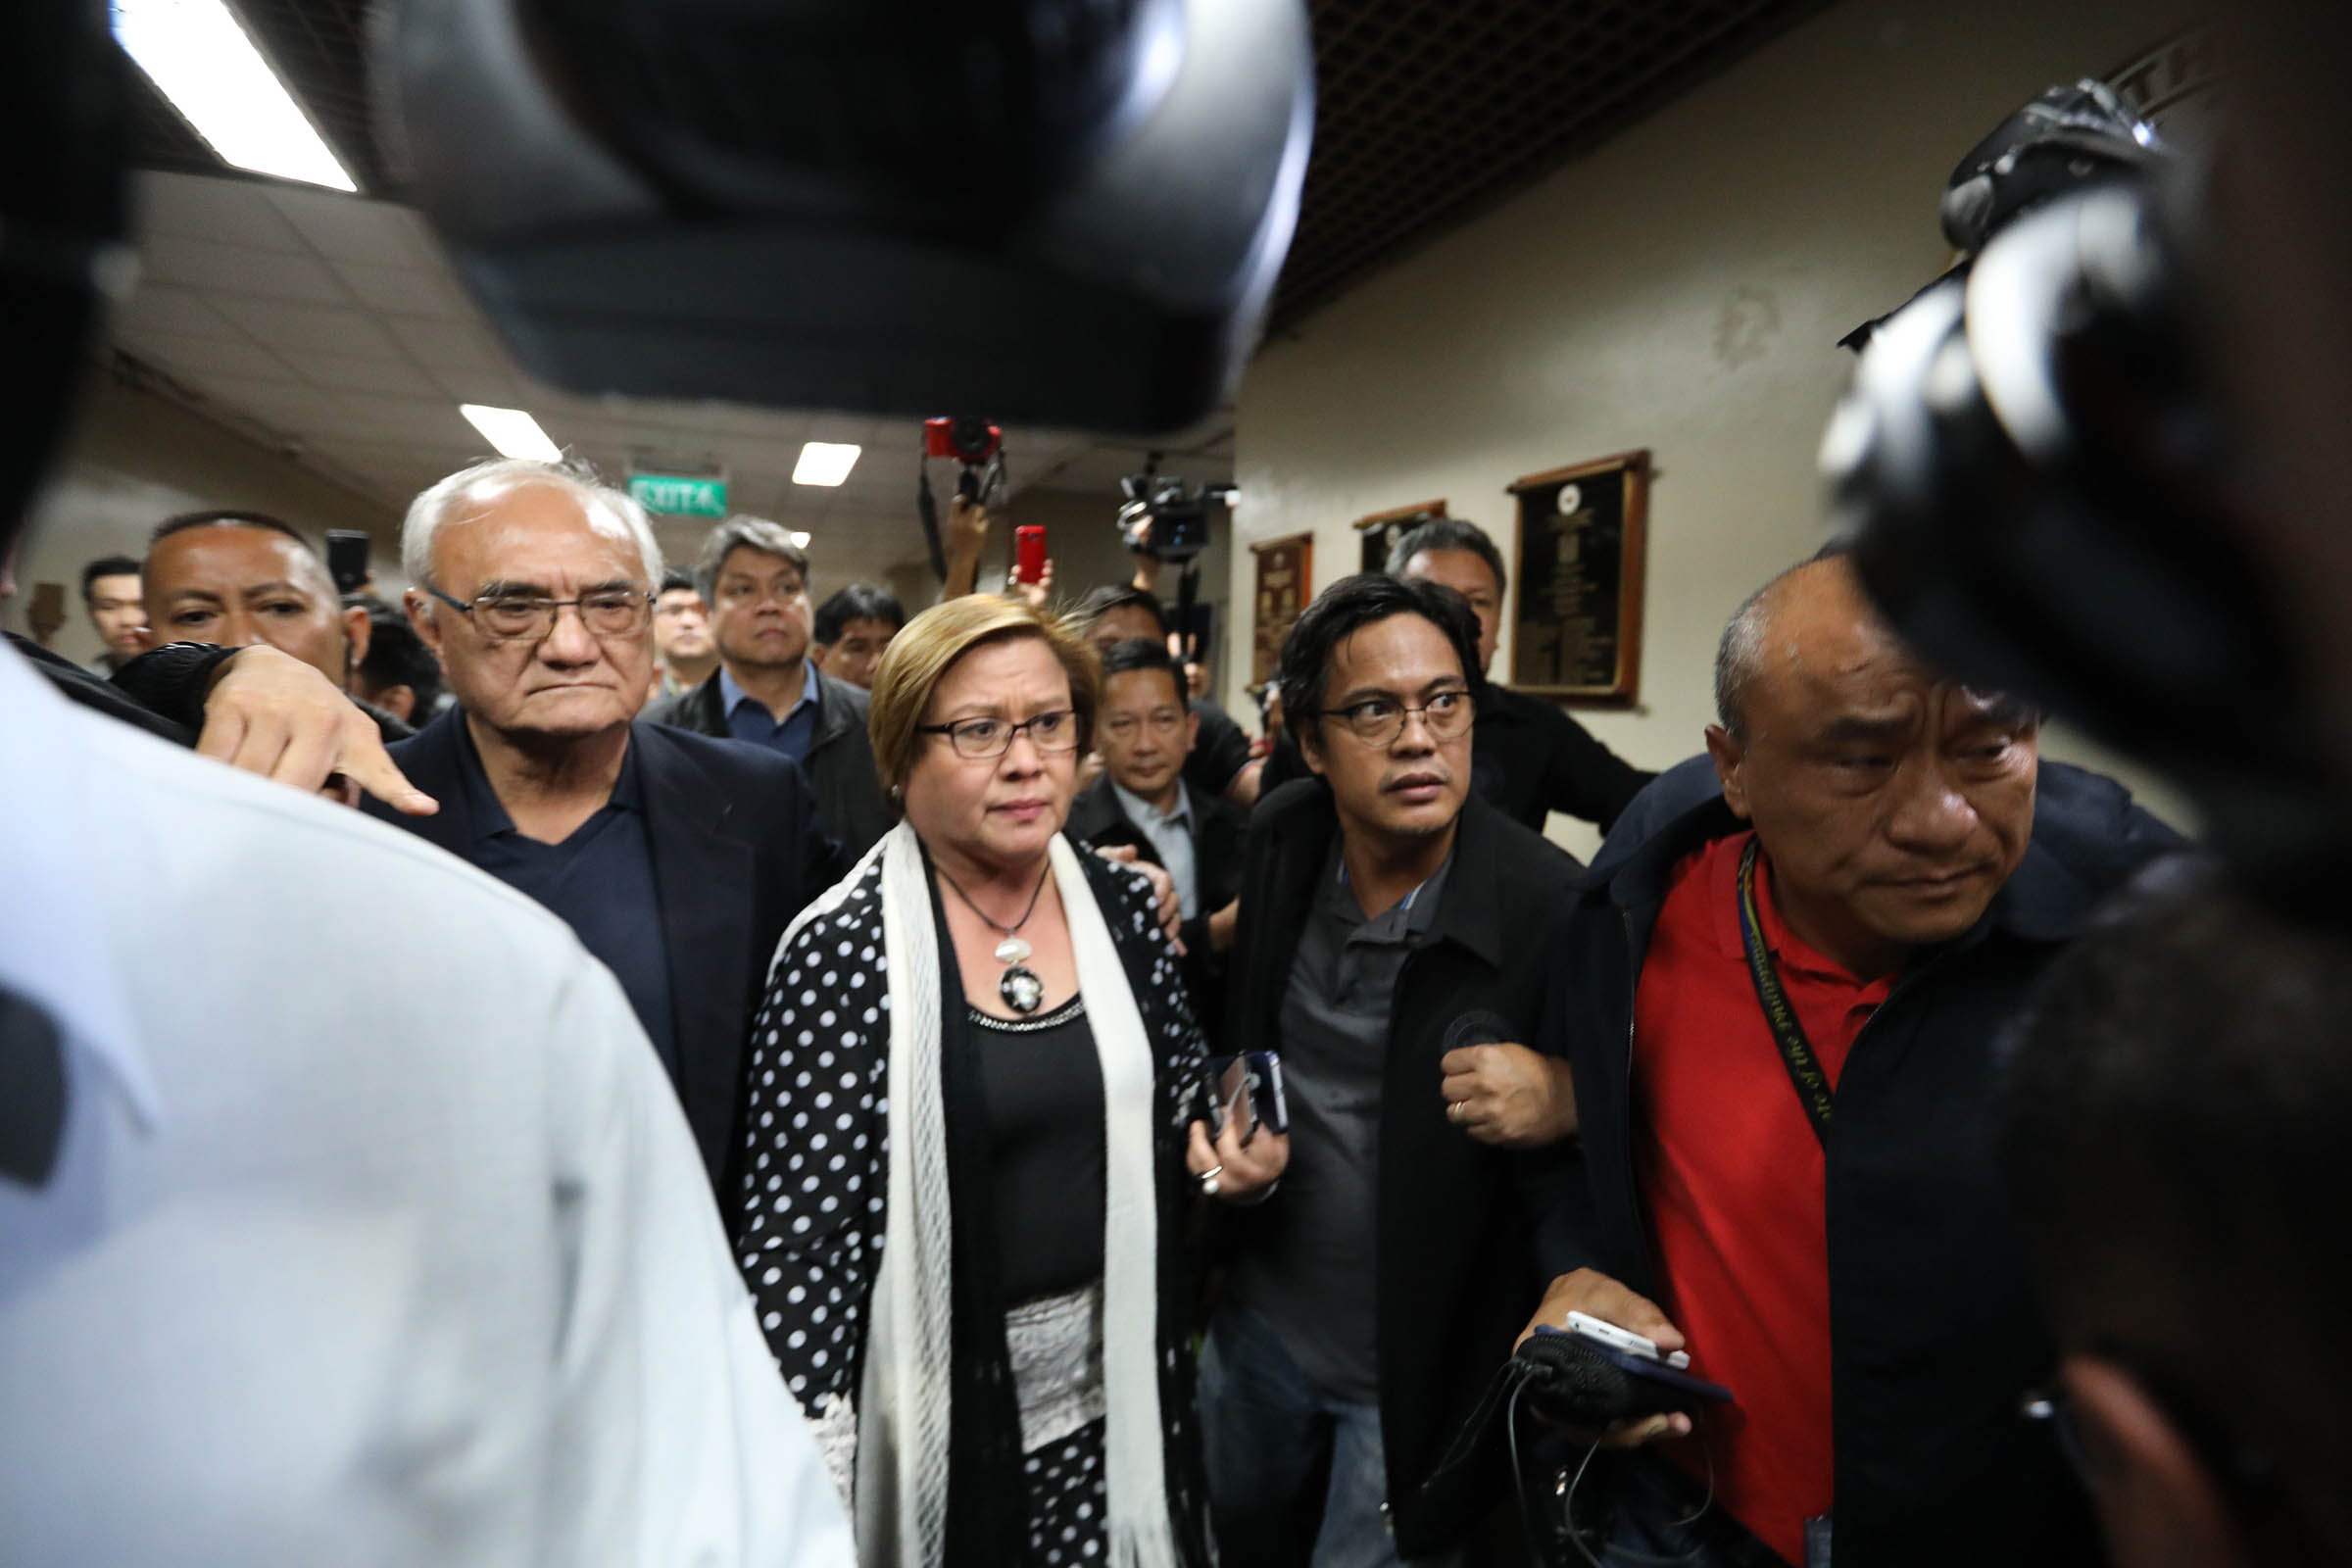 The warrant of arrest issued against Senator Leila de Lima for her alleged involvement in the illegal drug trade gives her the opportunity to clear her name, Palace officials said Thursday. (Photo by Avito C. Dalan/PNA)